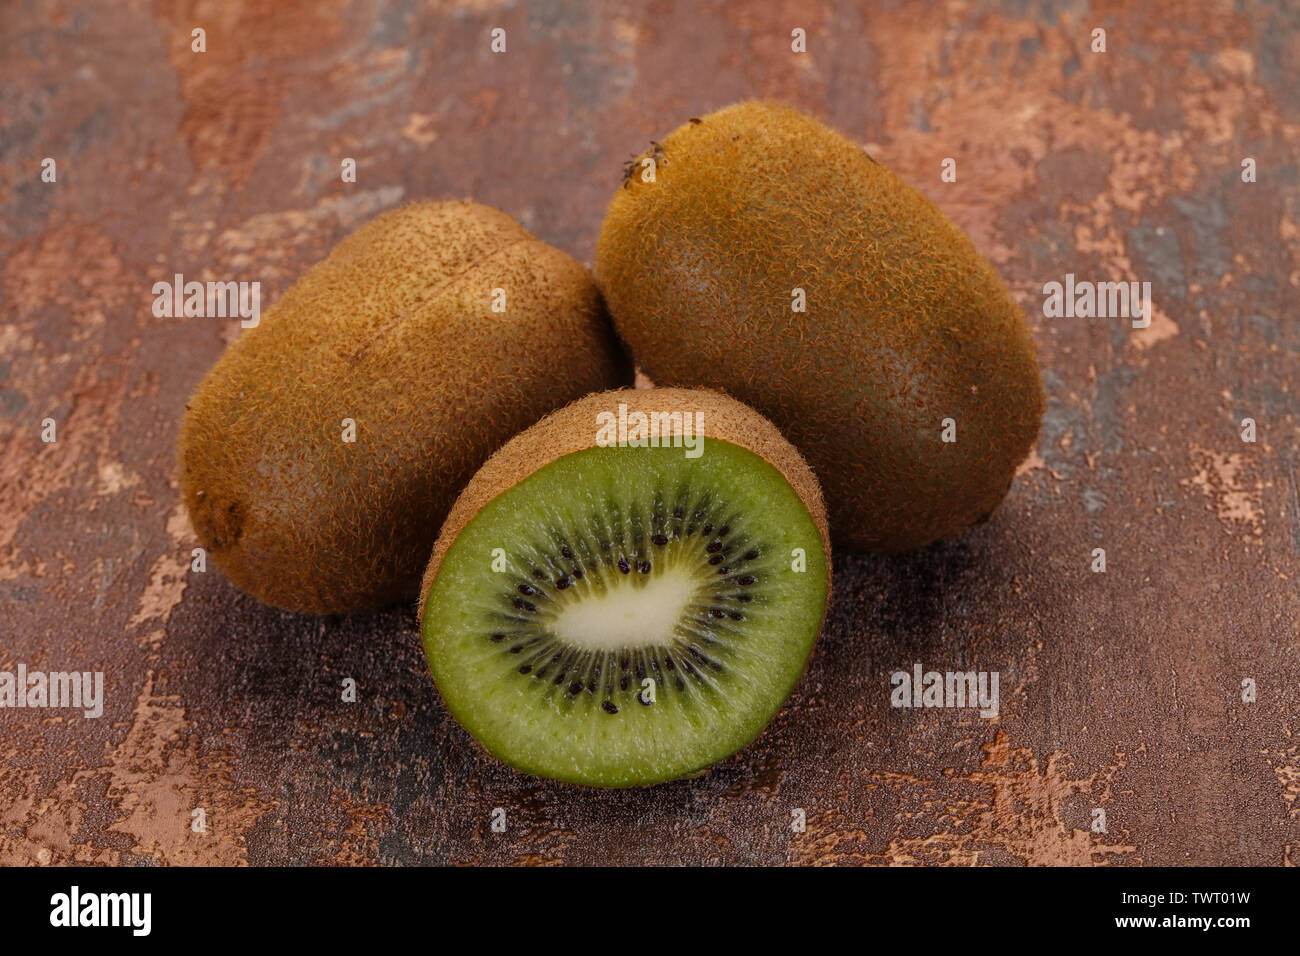 Fresh ripe juicy kiwi fruit - Stock Image